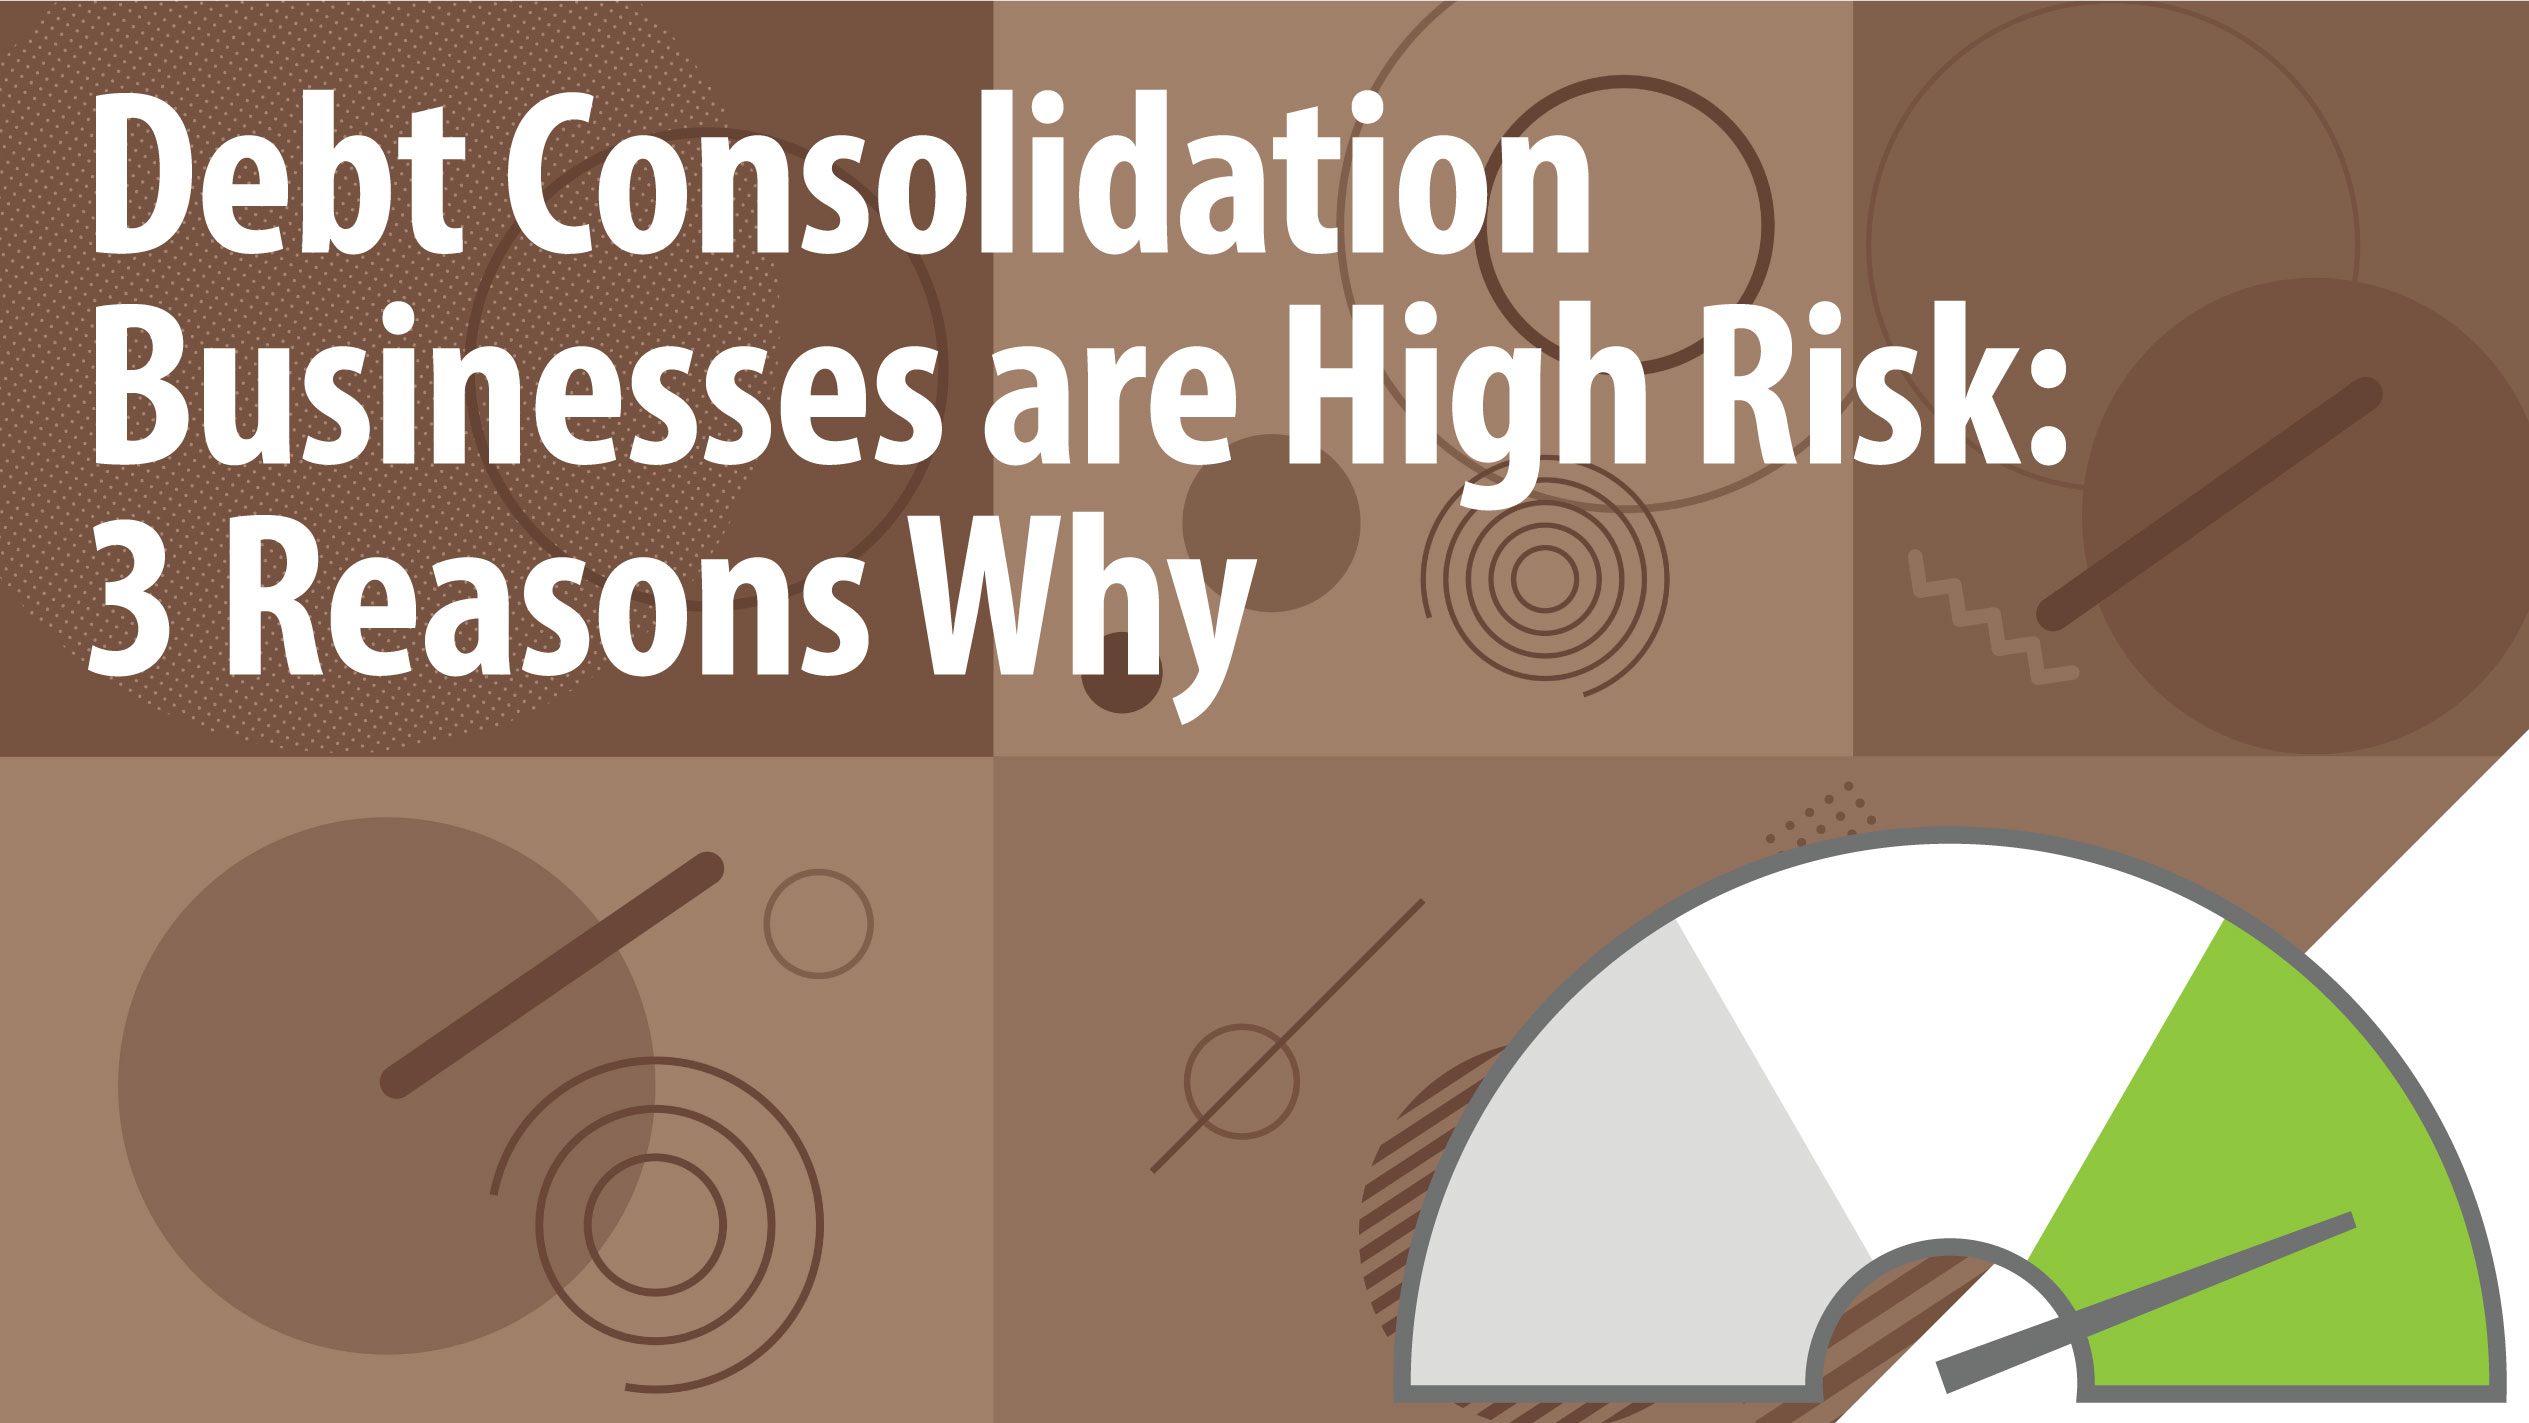 Debt Consolidation Businesses are High Risk: 3 Reasons Why